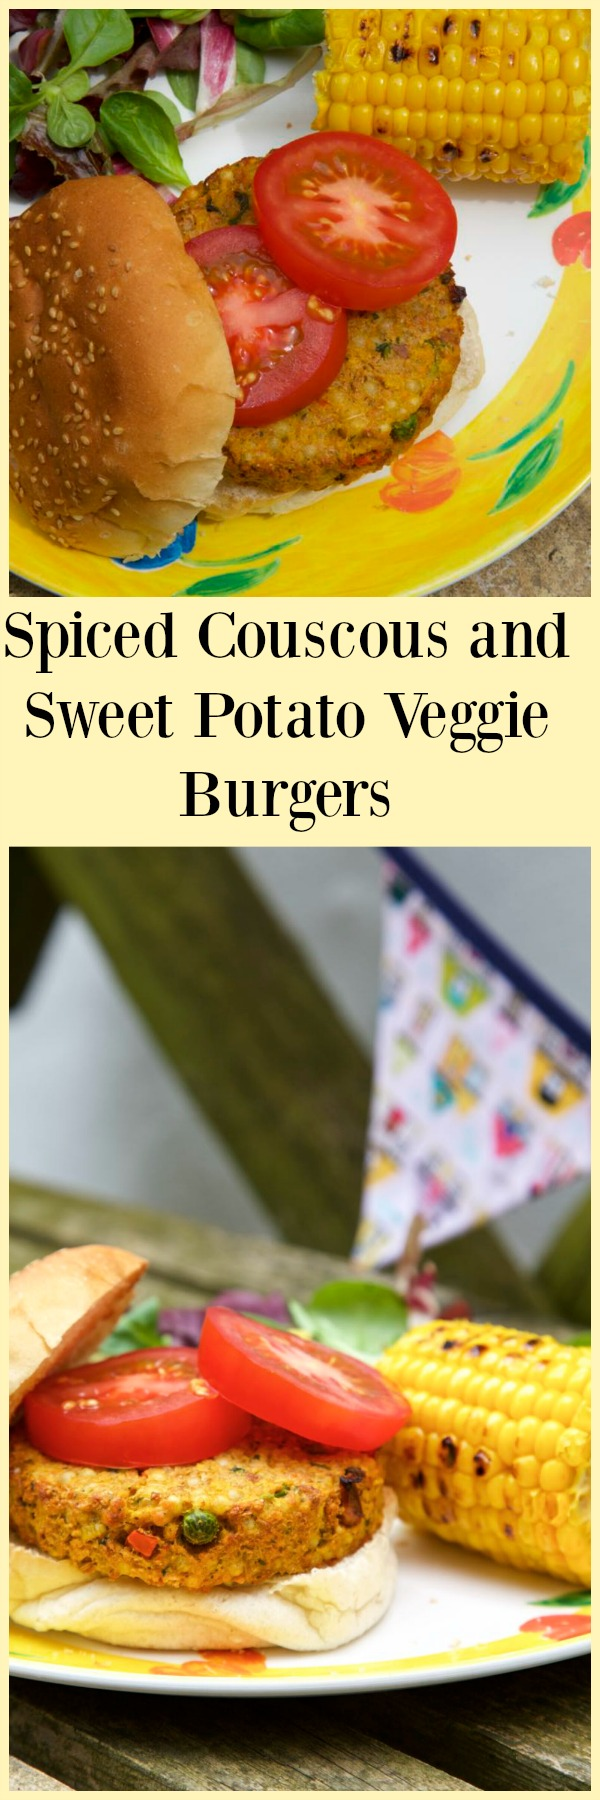 Spiced Couscous and Sweet Potato Veggie Burgers.